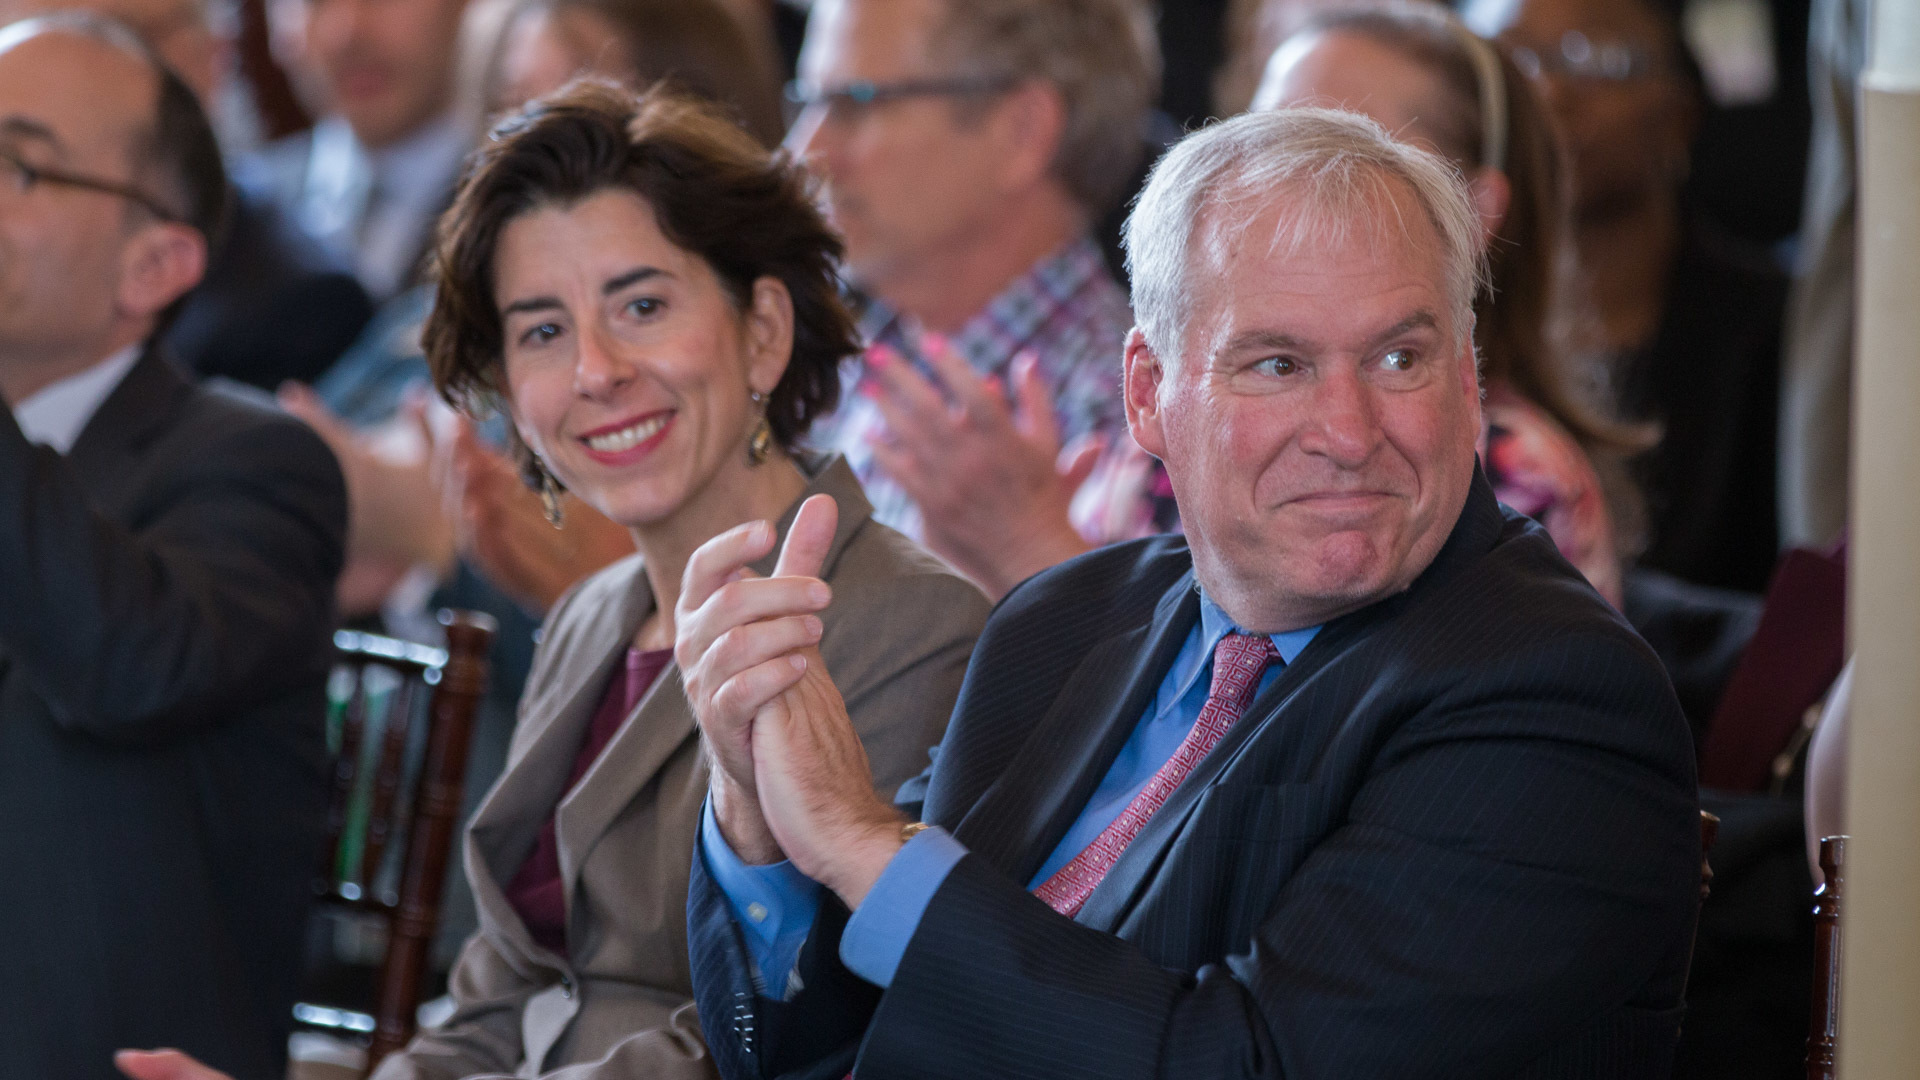 Photo of Eric S. Rosengren and Rhode Island Governor, Gina Raimondo clapping for the cities that won a multiyear grants in Rhode Island for the Working Cities Challenge Competition.